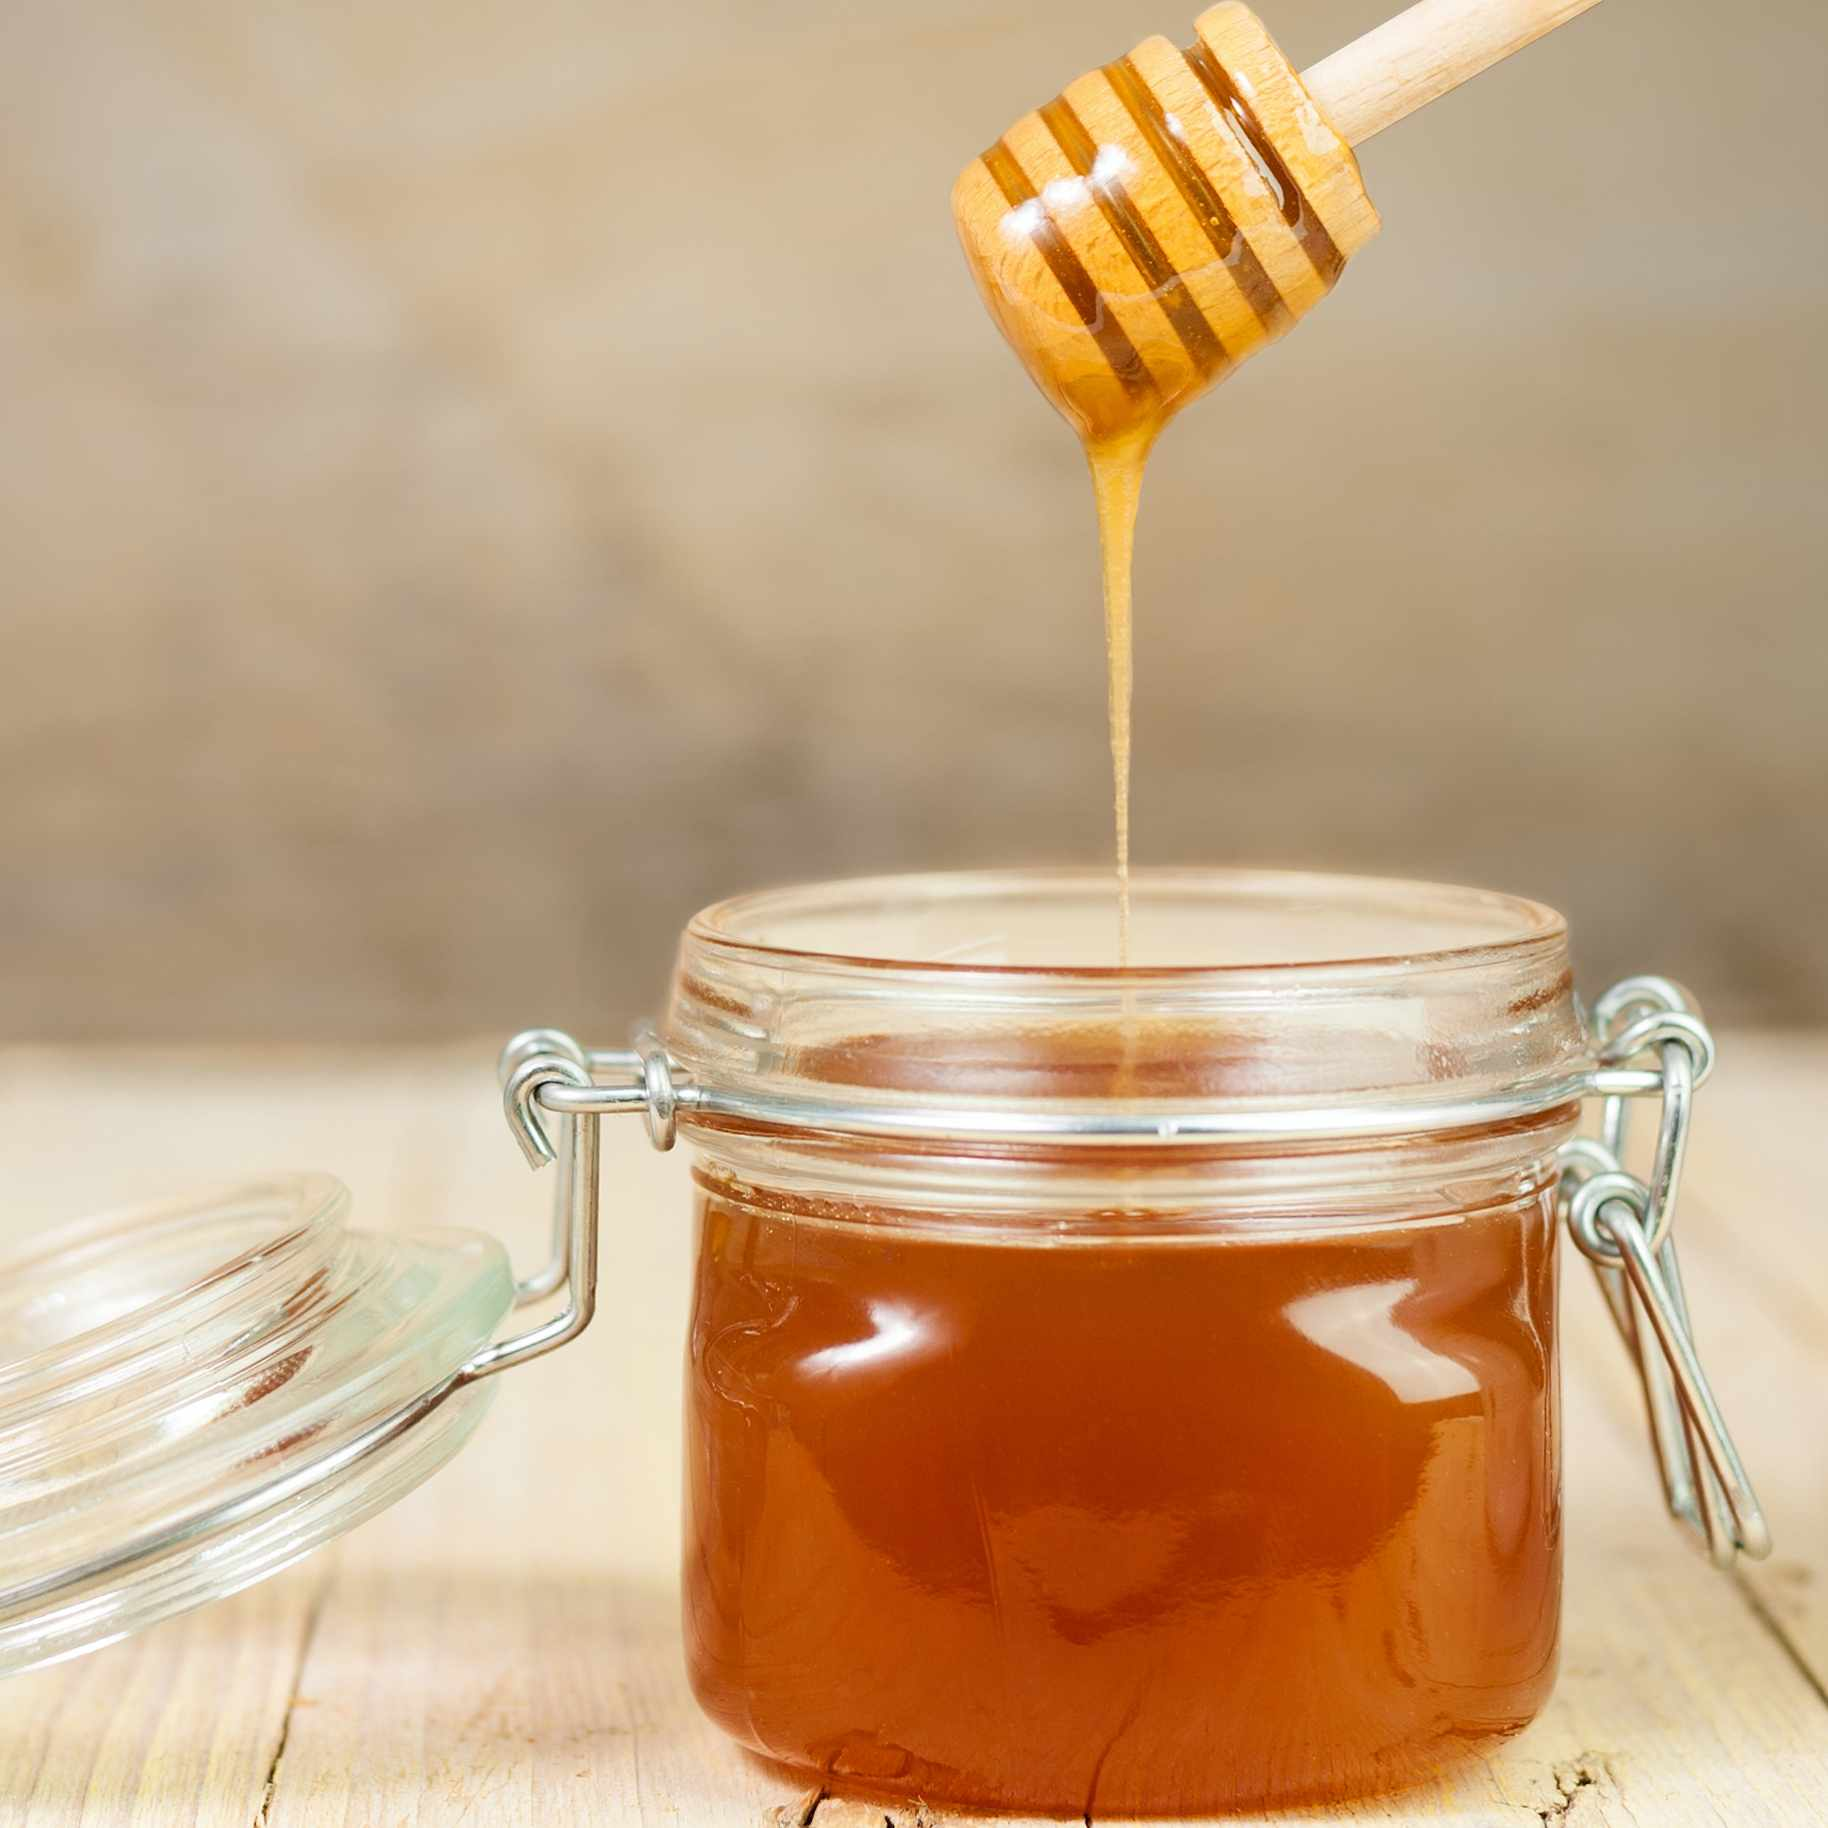 a jar of honey on a table with a wooden spindle